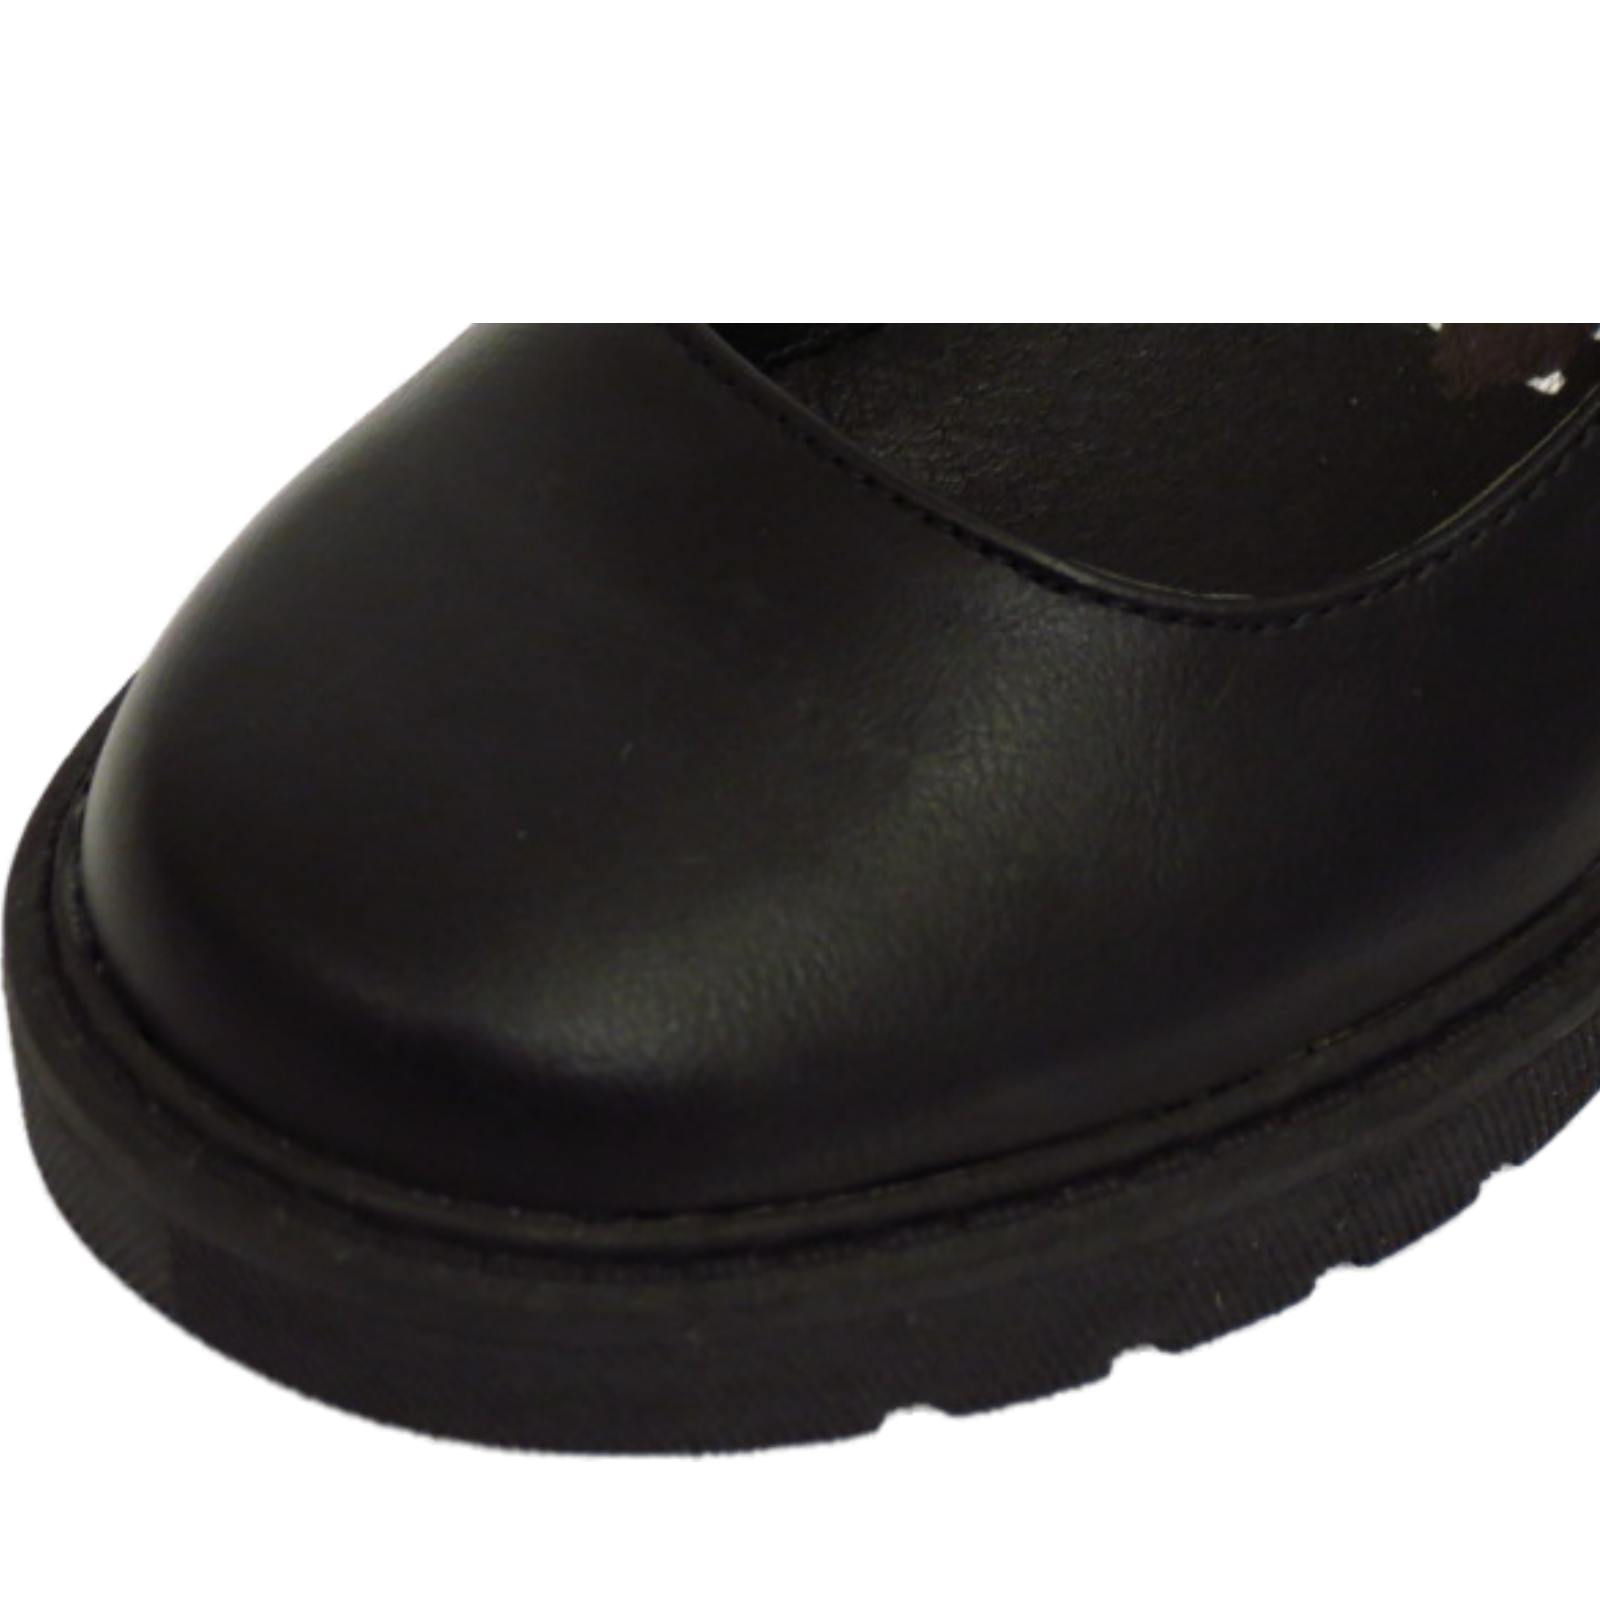 GIRLS-KIDS-CHILDRENS-BUCKLE-T-BAR-BLACK-SCHOOL-PUMPS-DOLLY-SMART-FLAT-SHOES-10-5 thumbnail 24